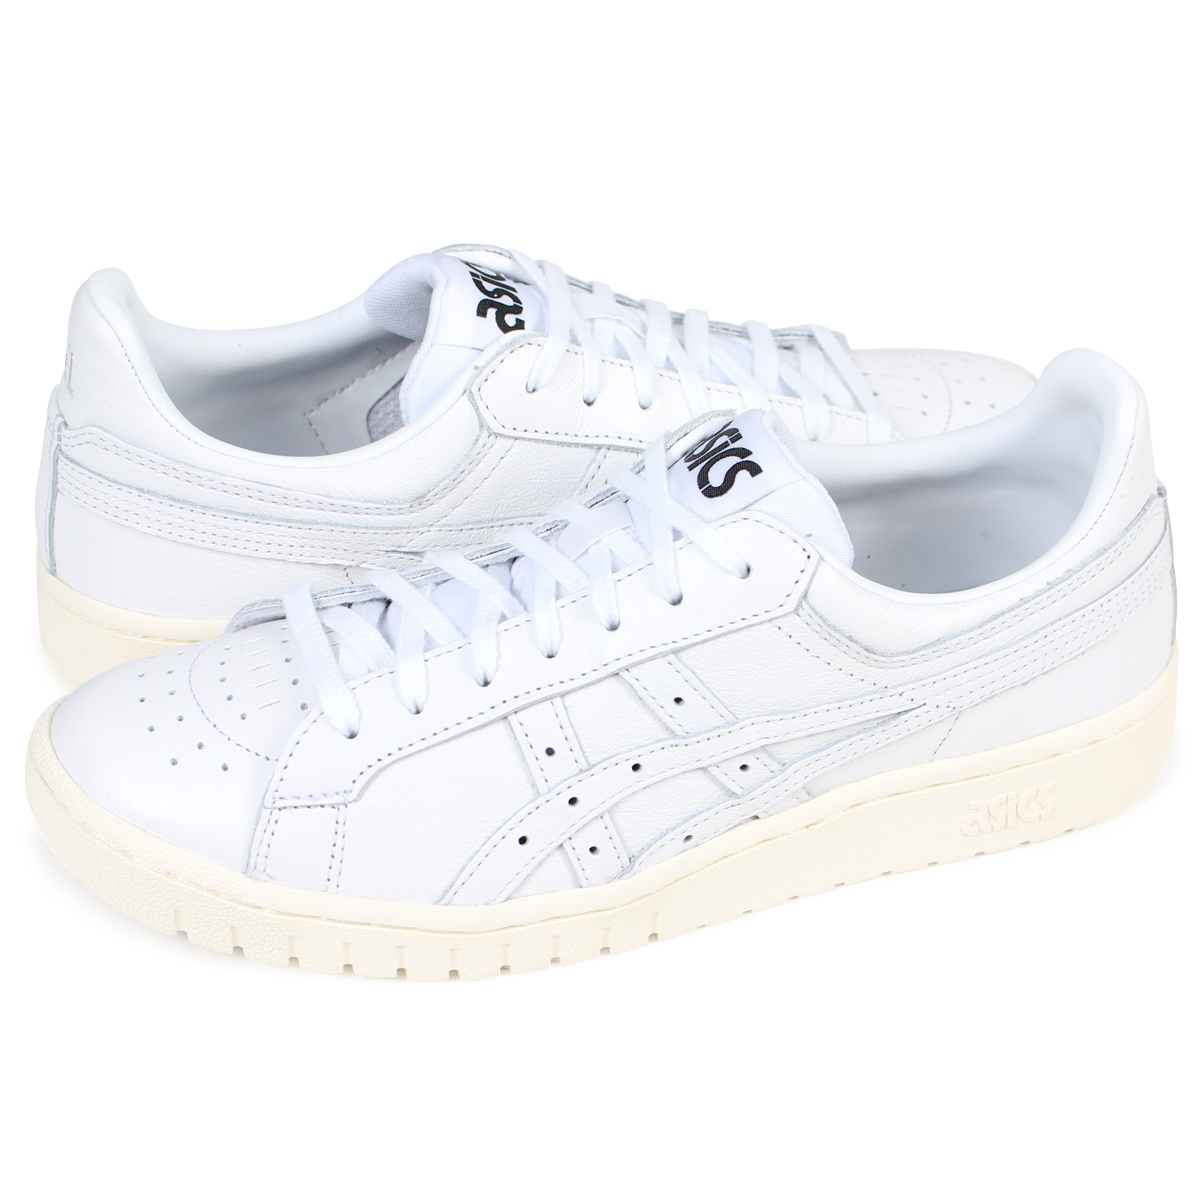 asics tiger white shoes - 62% OFF